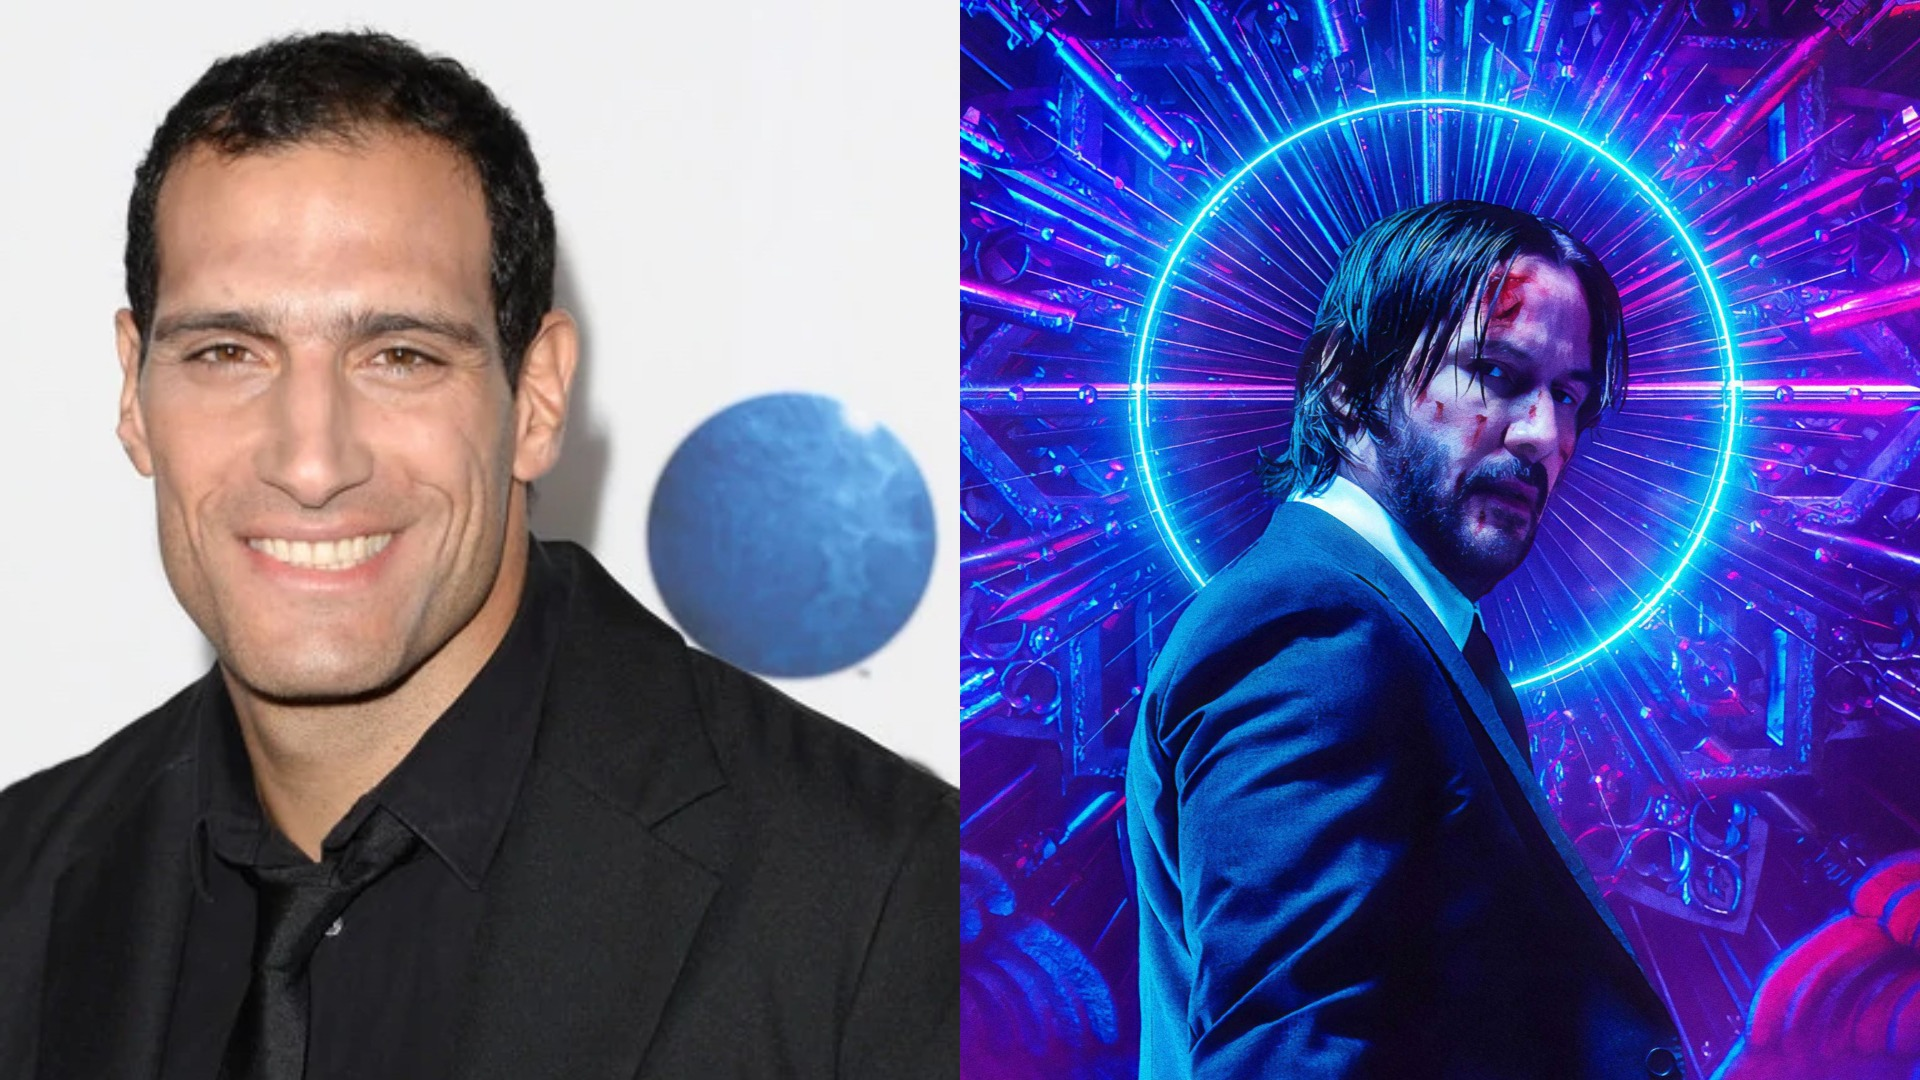 Deadline is exclusively reporting that Marko Zaror is in negotiations with Lionsgate to join the cast for the upcoming action film John Wick: Chapter 4.